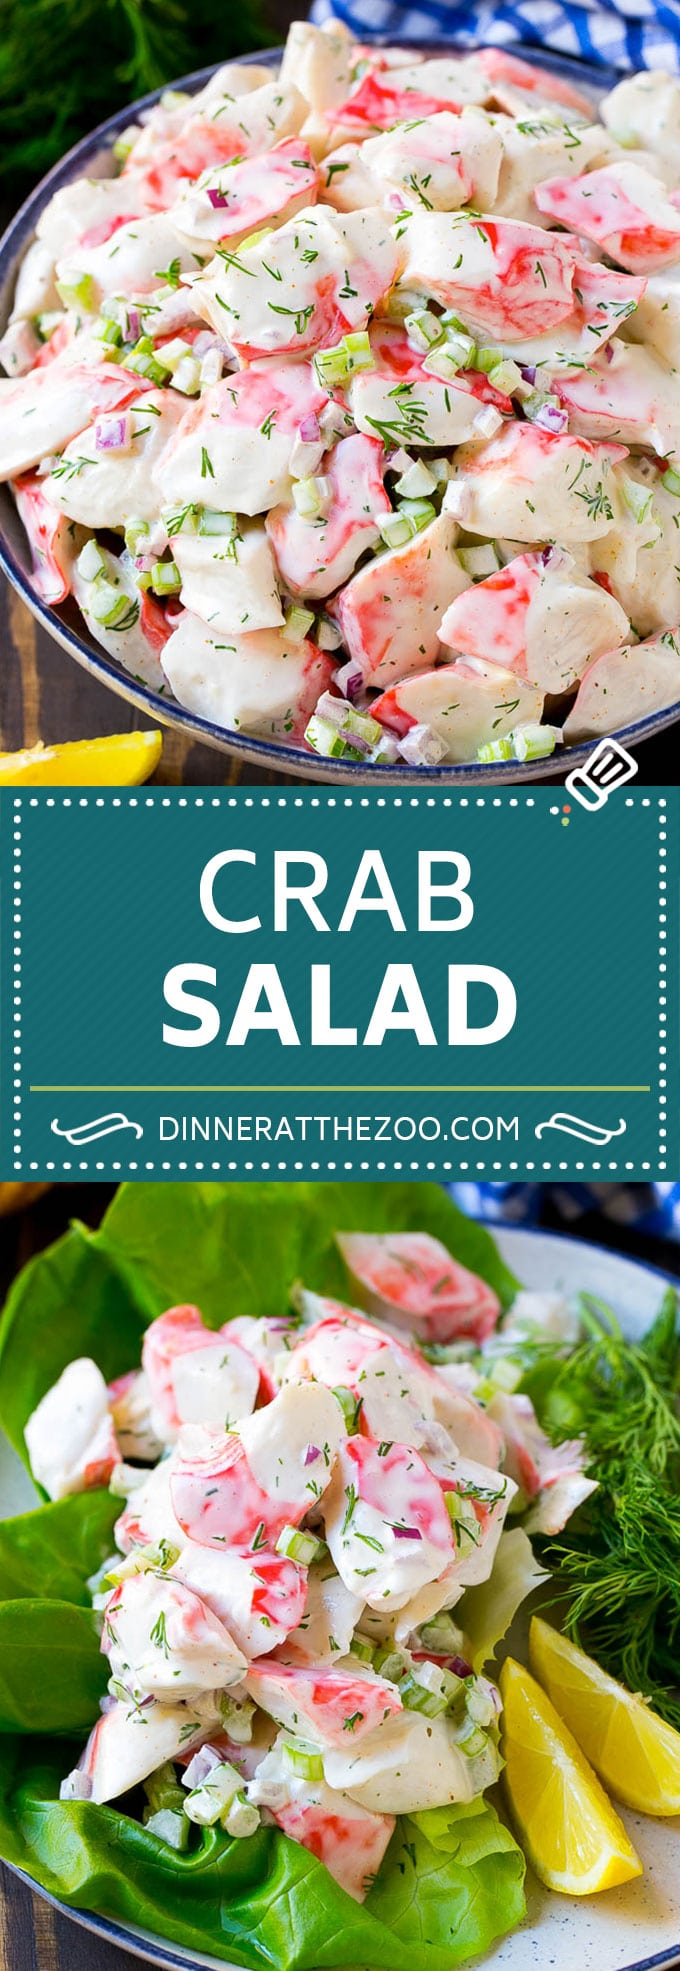 Crab Salad Recipe | Seafood Salad | Deli Salad #crab #salad #seafood #lowcarb #keto #lunch #dinner #dinneratthezoo